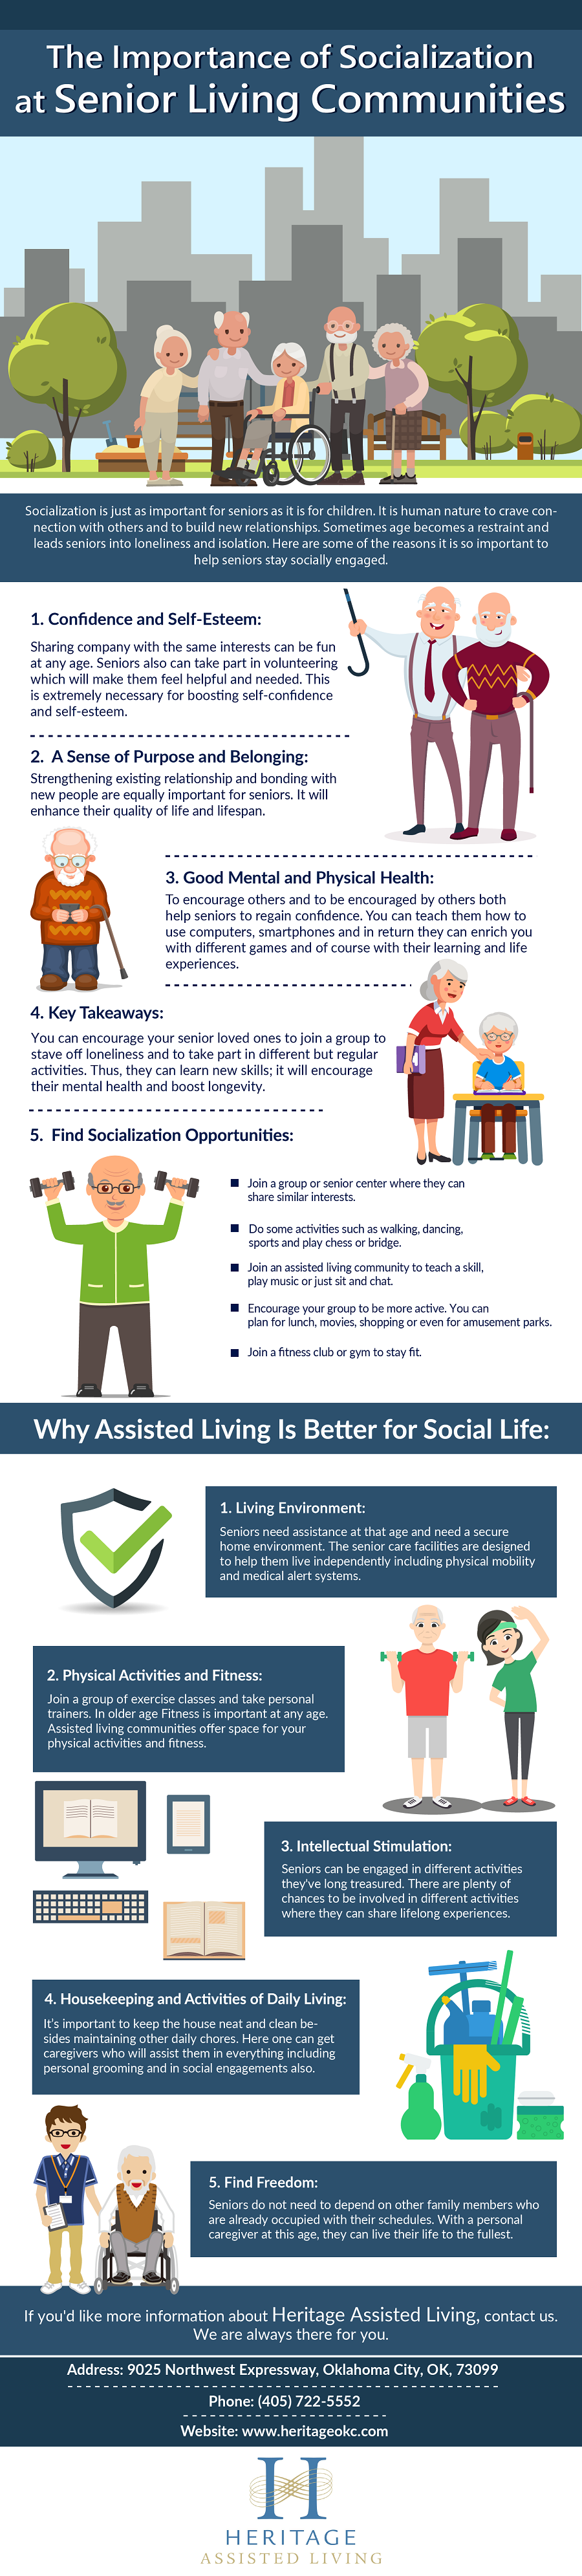 The Importance of Socialization at Senior Living Communities.png